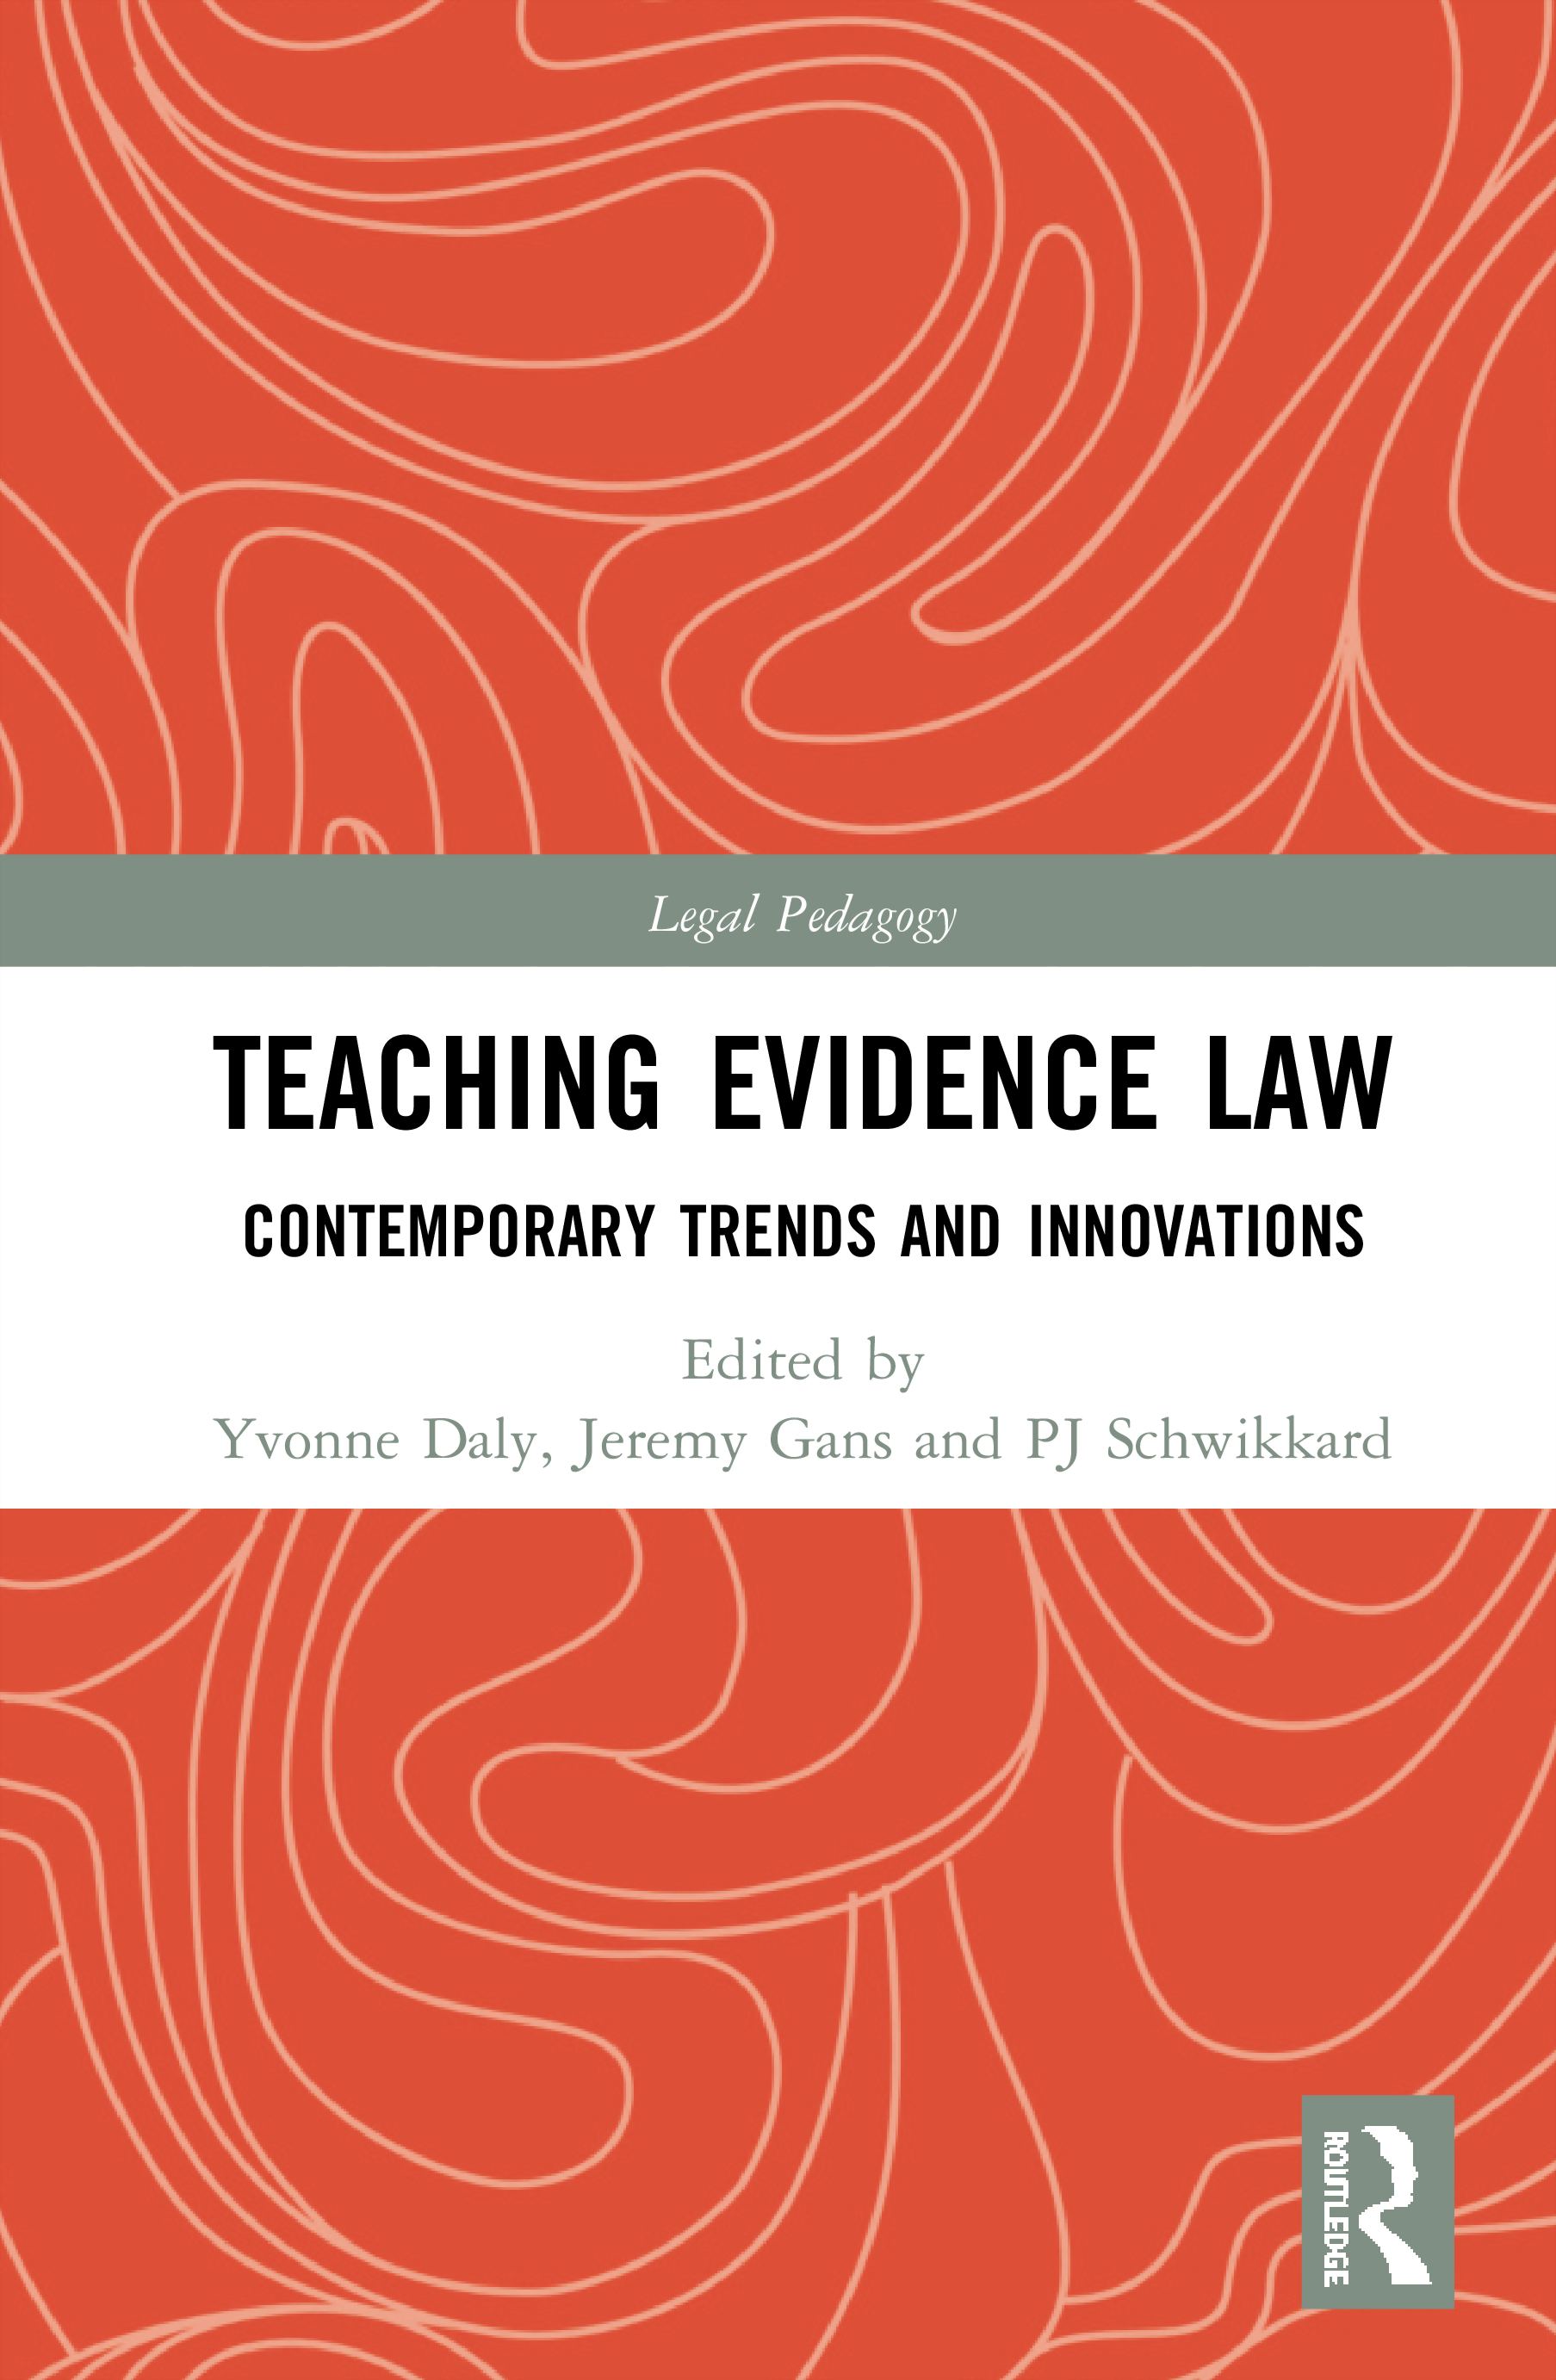 Teaching Evidence Law: Contemporary Trends and Innovations book cover